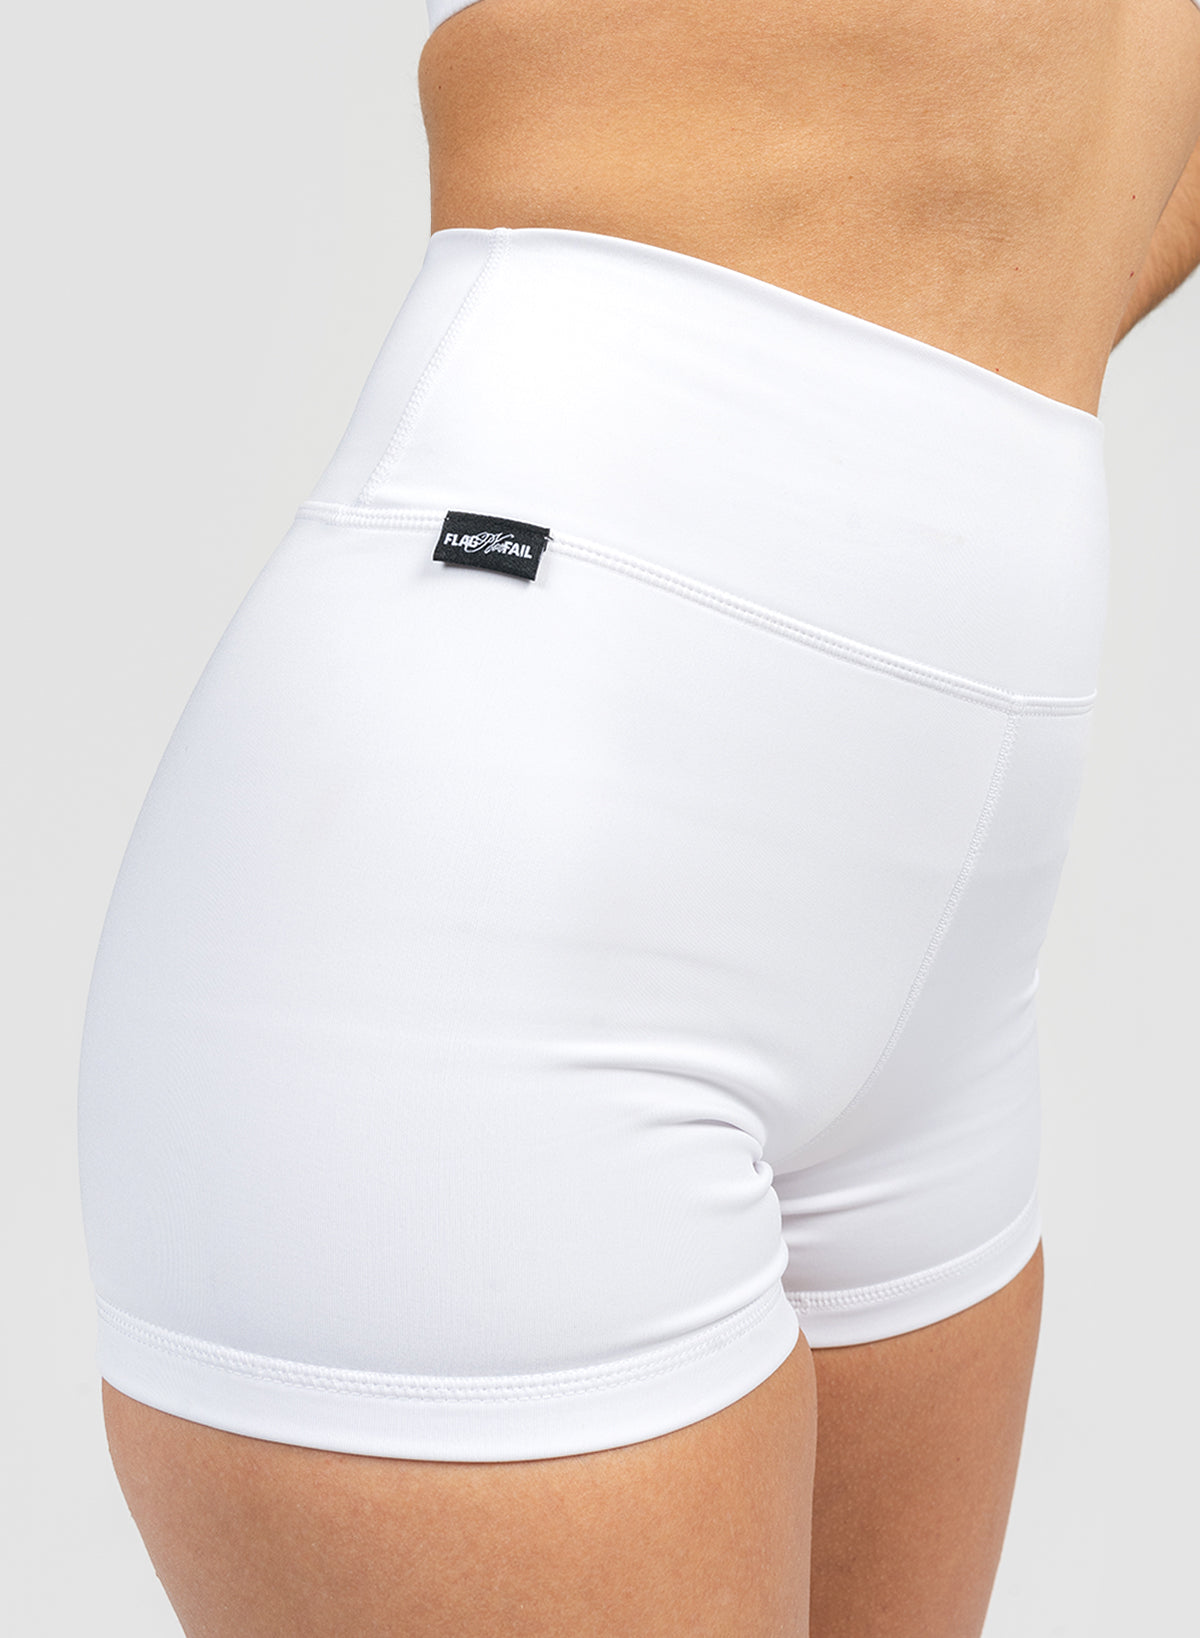 VIVID 2.0 COMPRESSION SHORTS - WHITE